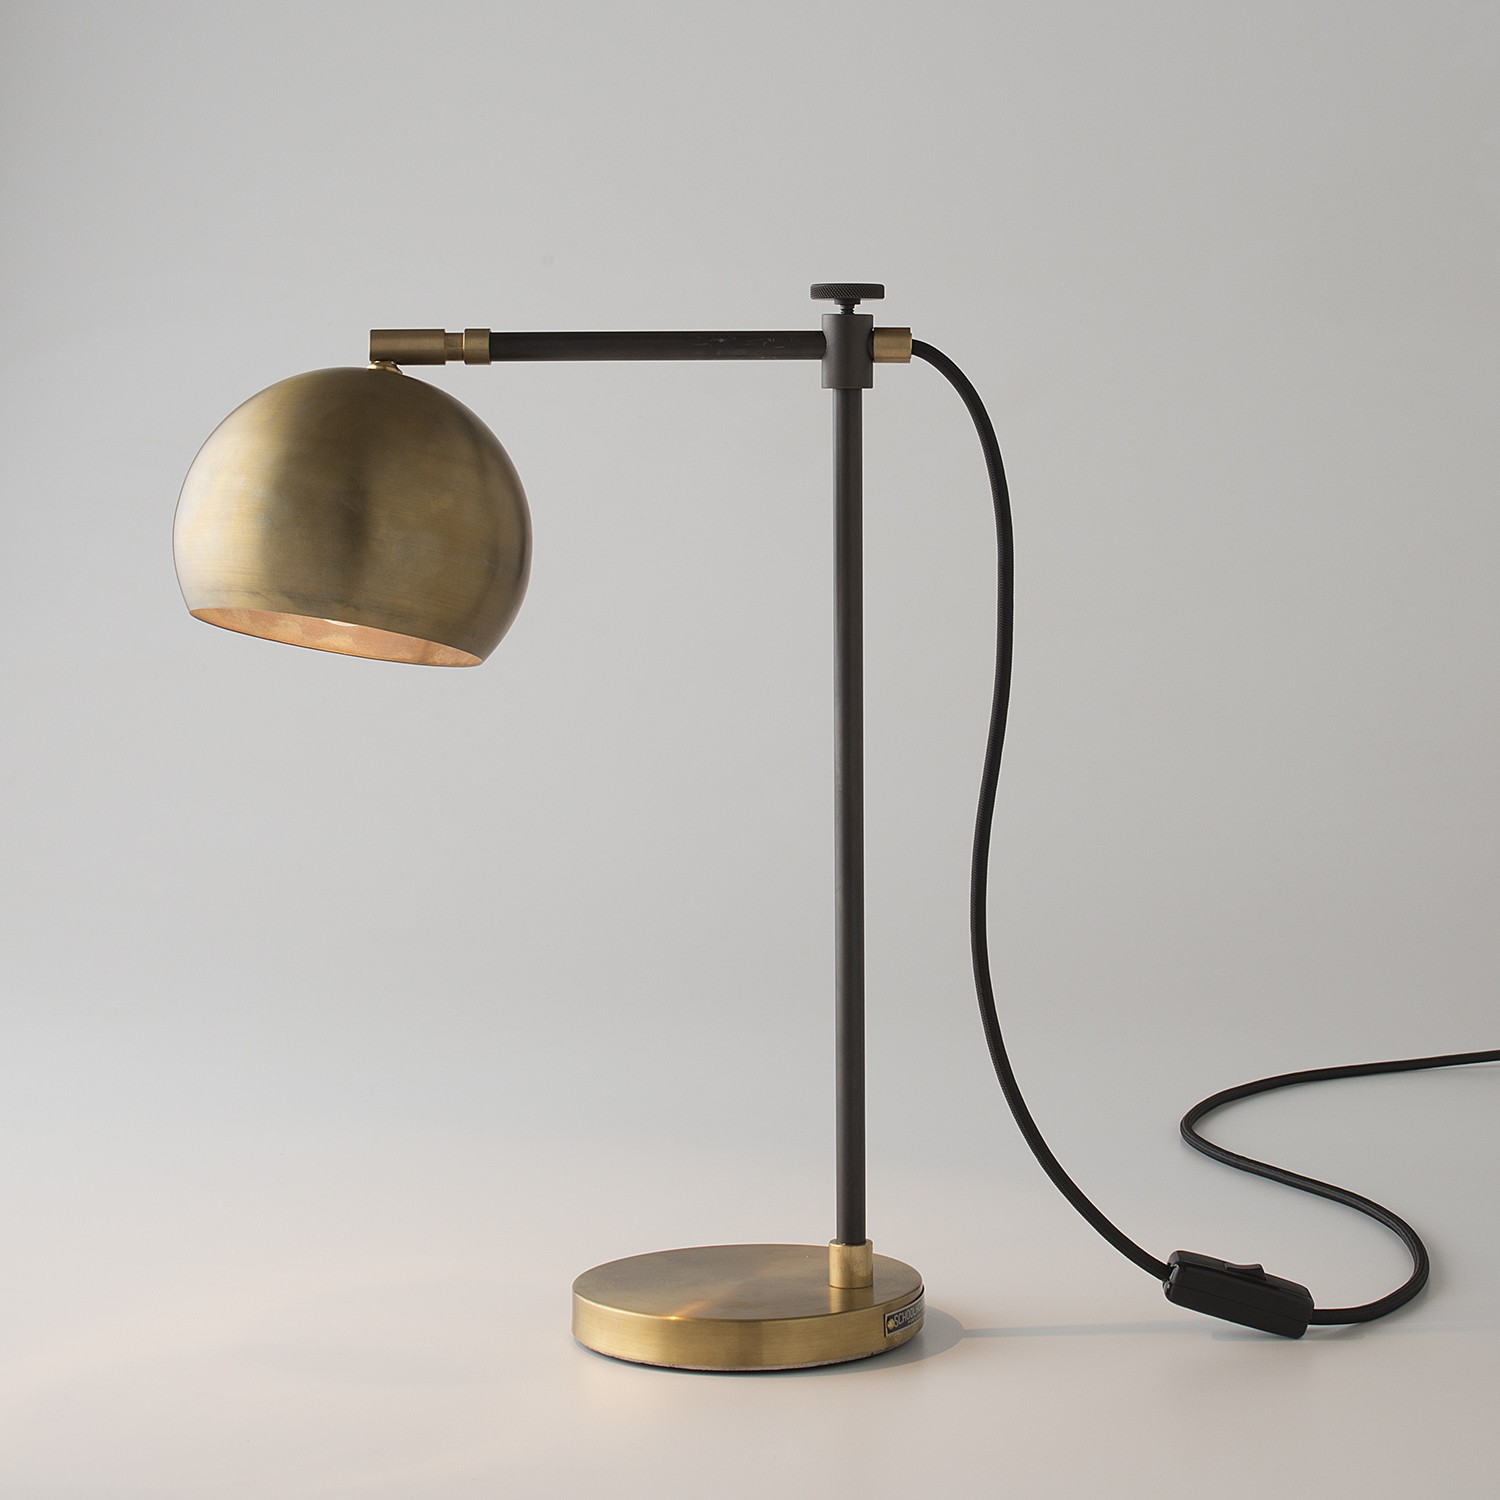 Desk Light Brass Shelf And Wall Lights From School House Electric